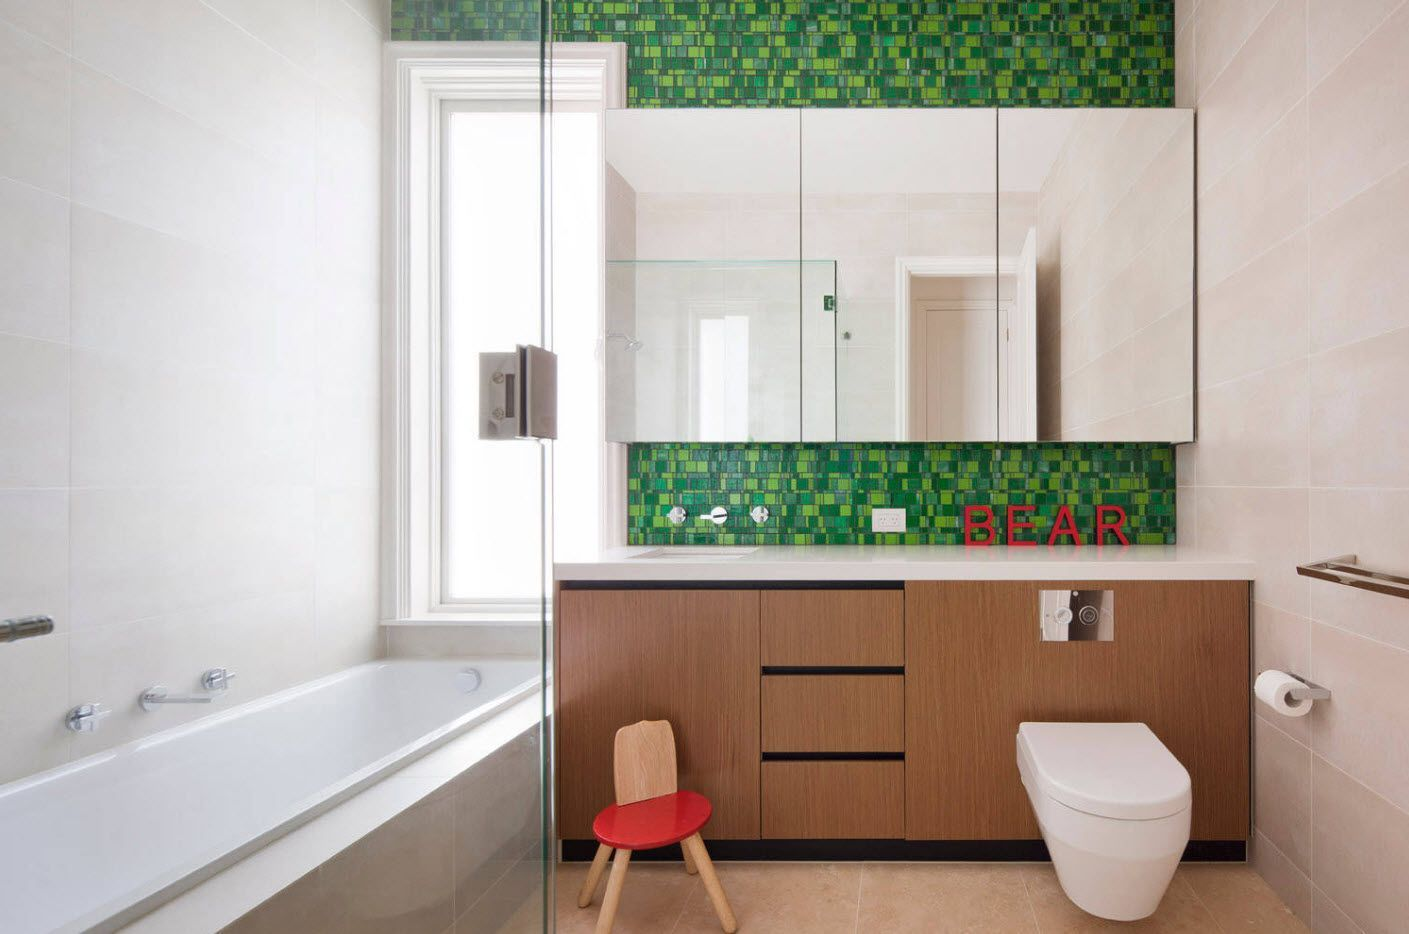 Interesting green inlays in bathroom finish